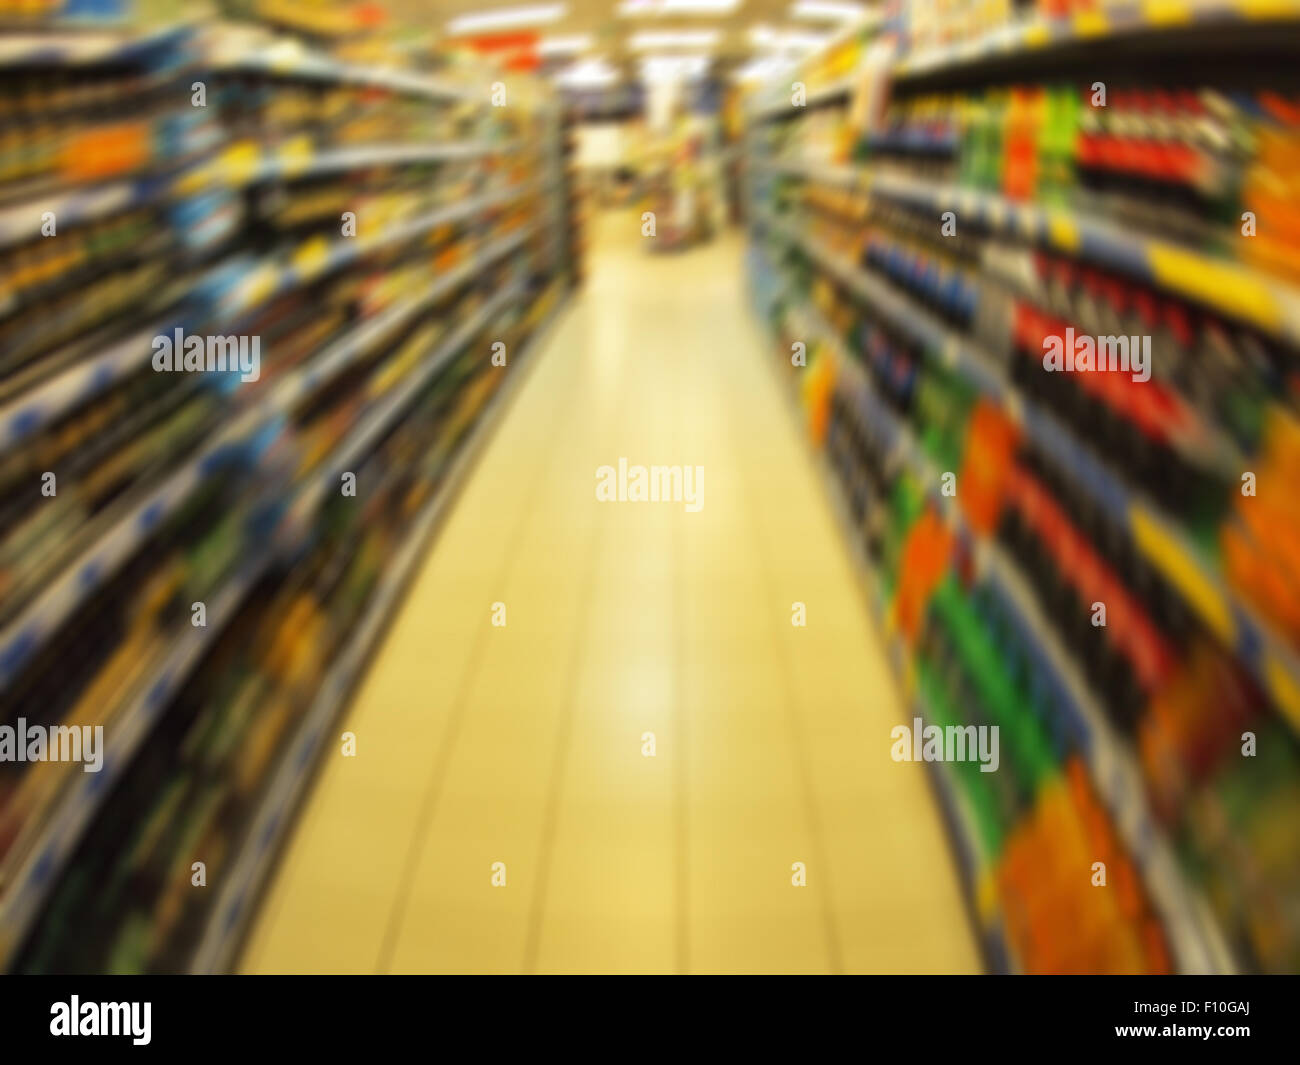 Defocused long shelf with sodas and juices in a supermarket with motion blur - Stock Image